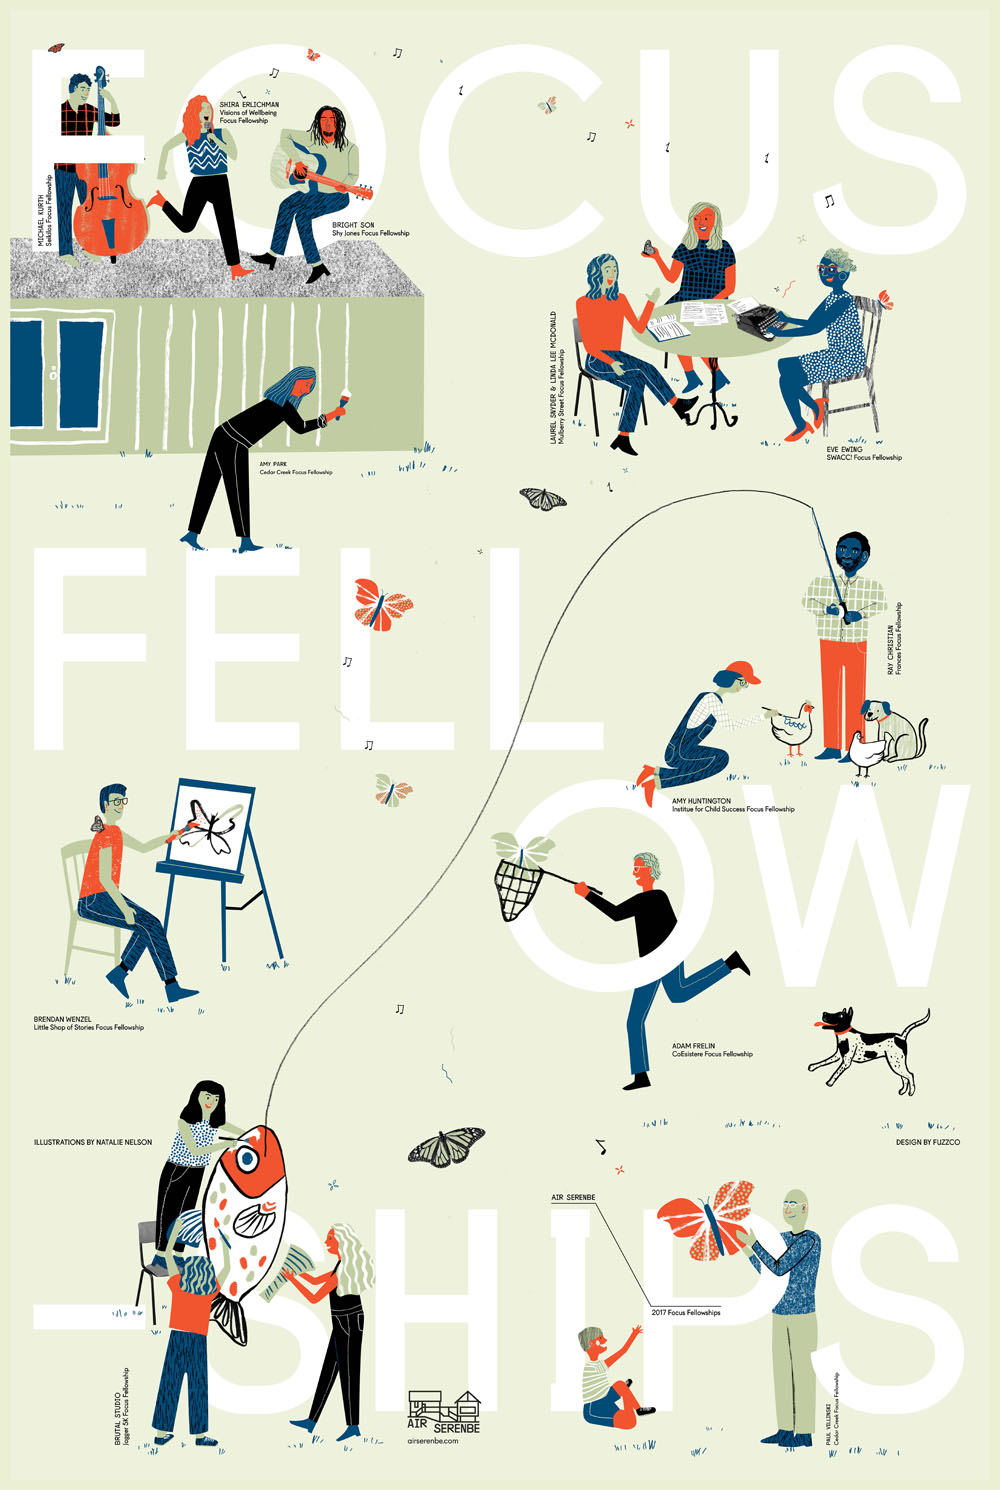 Serenbe Fellowship Poster. Illustration by Natalie Nelson. Represented by i2i Art Inc.